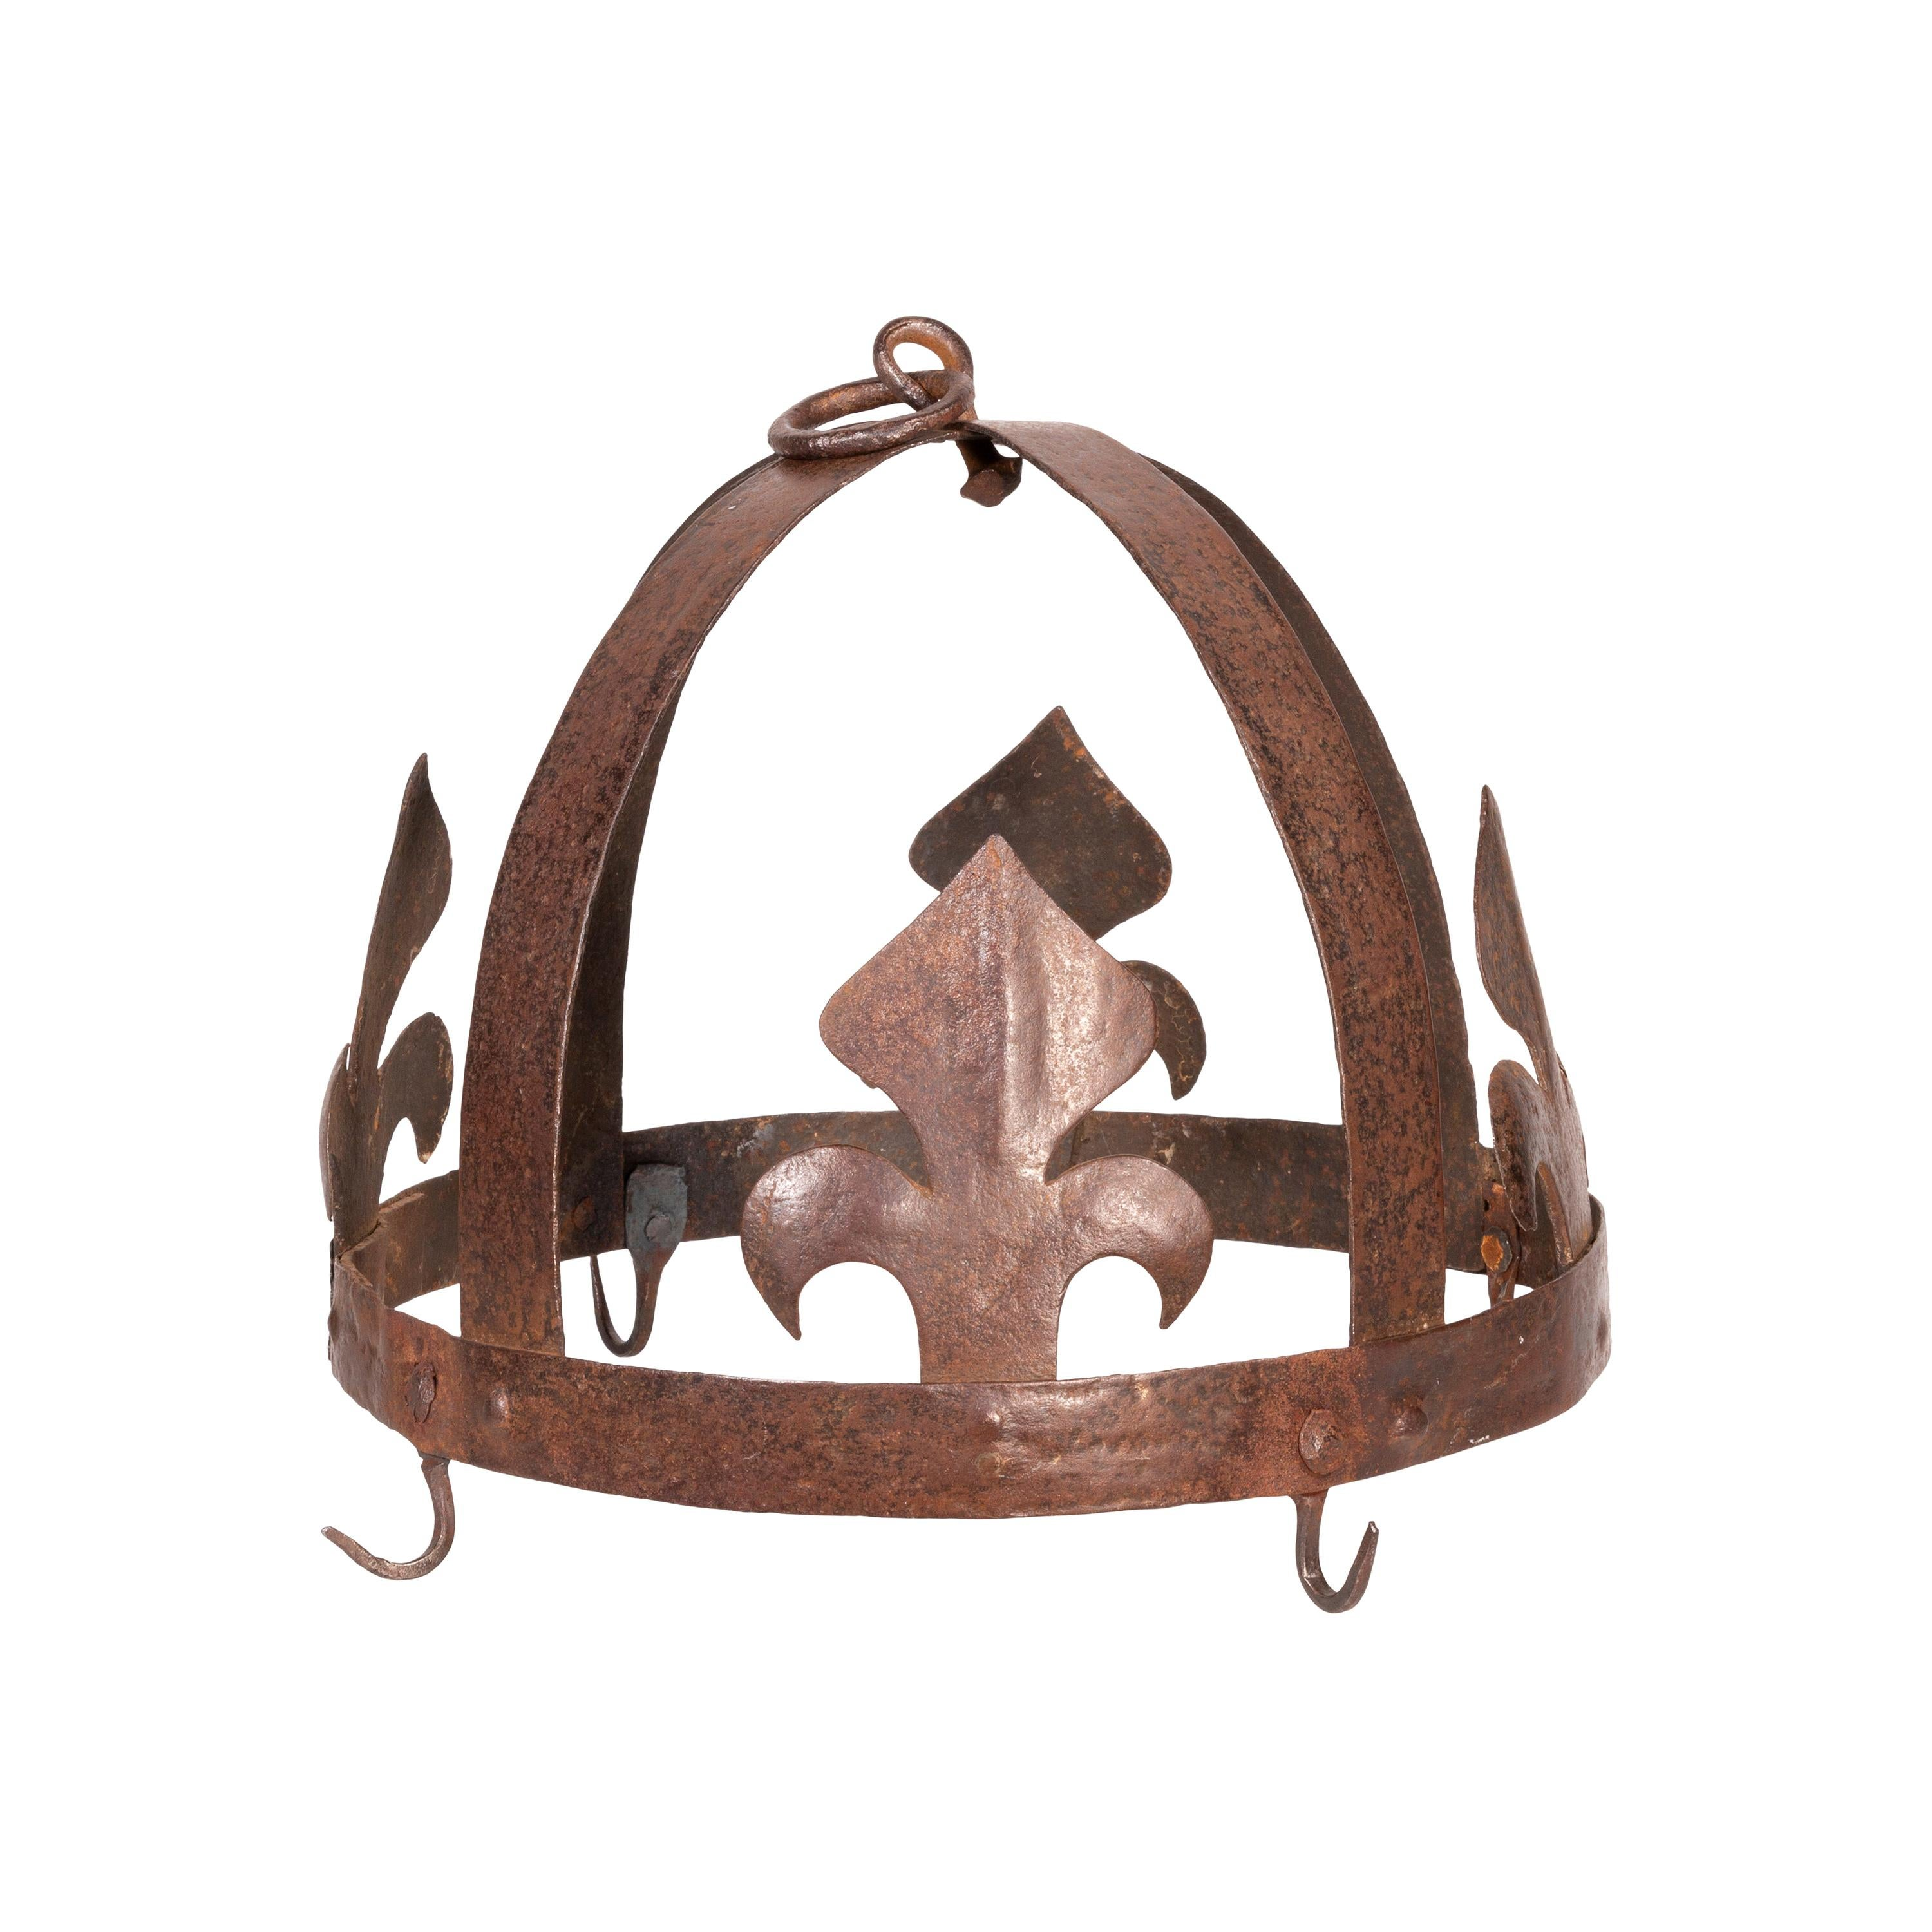 19th Century Forged Iron French Pot Rack